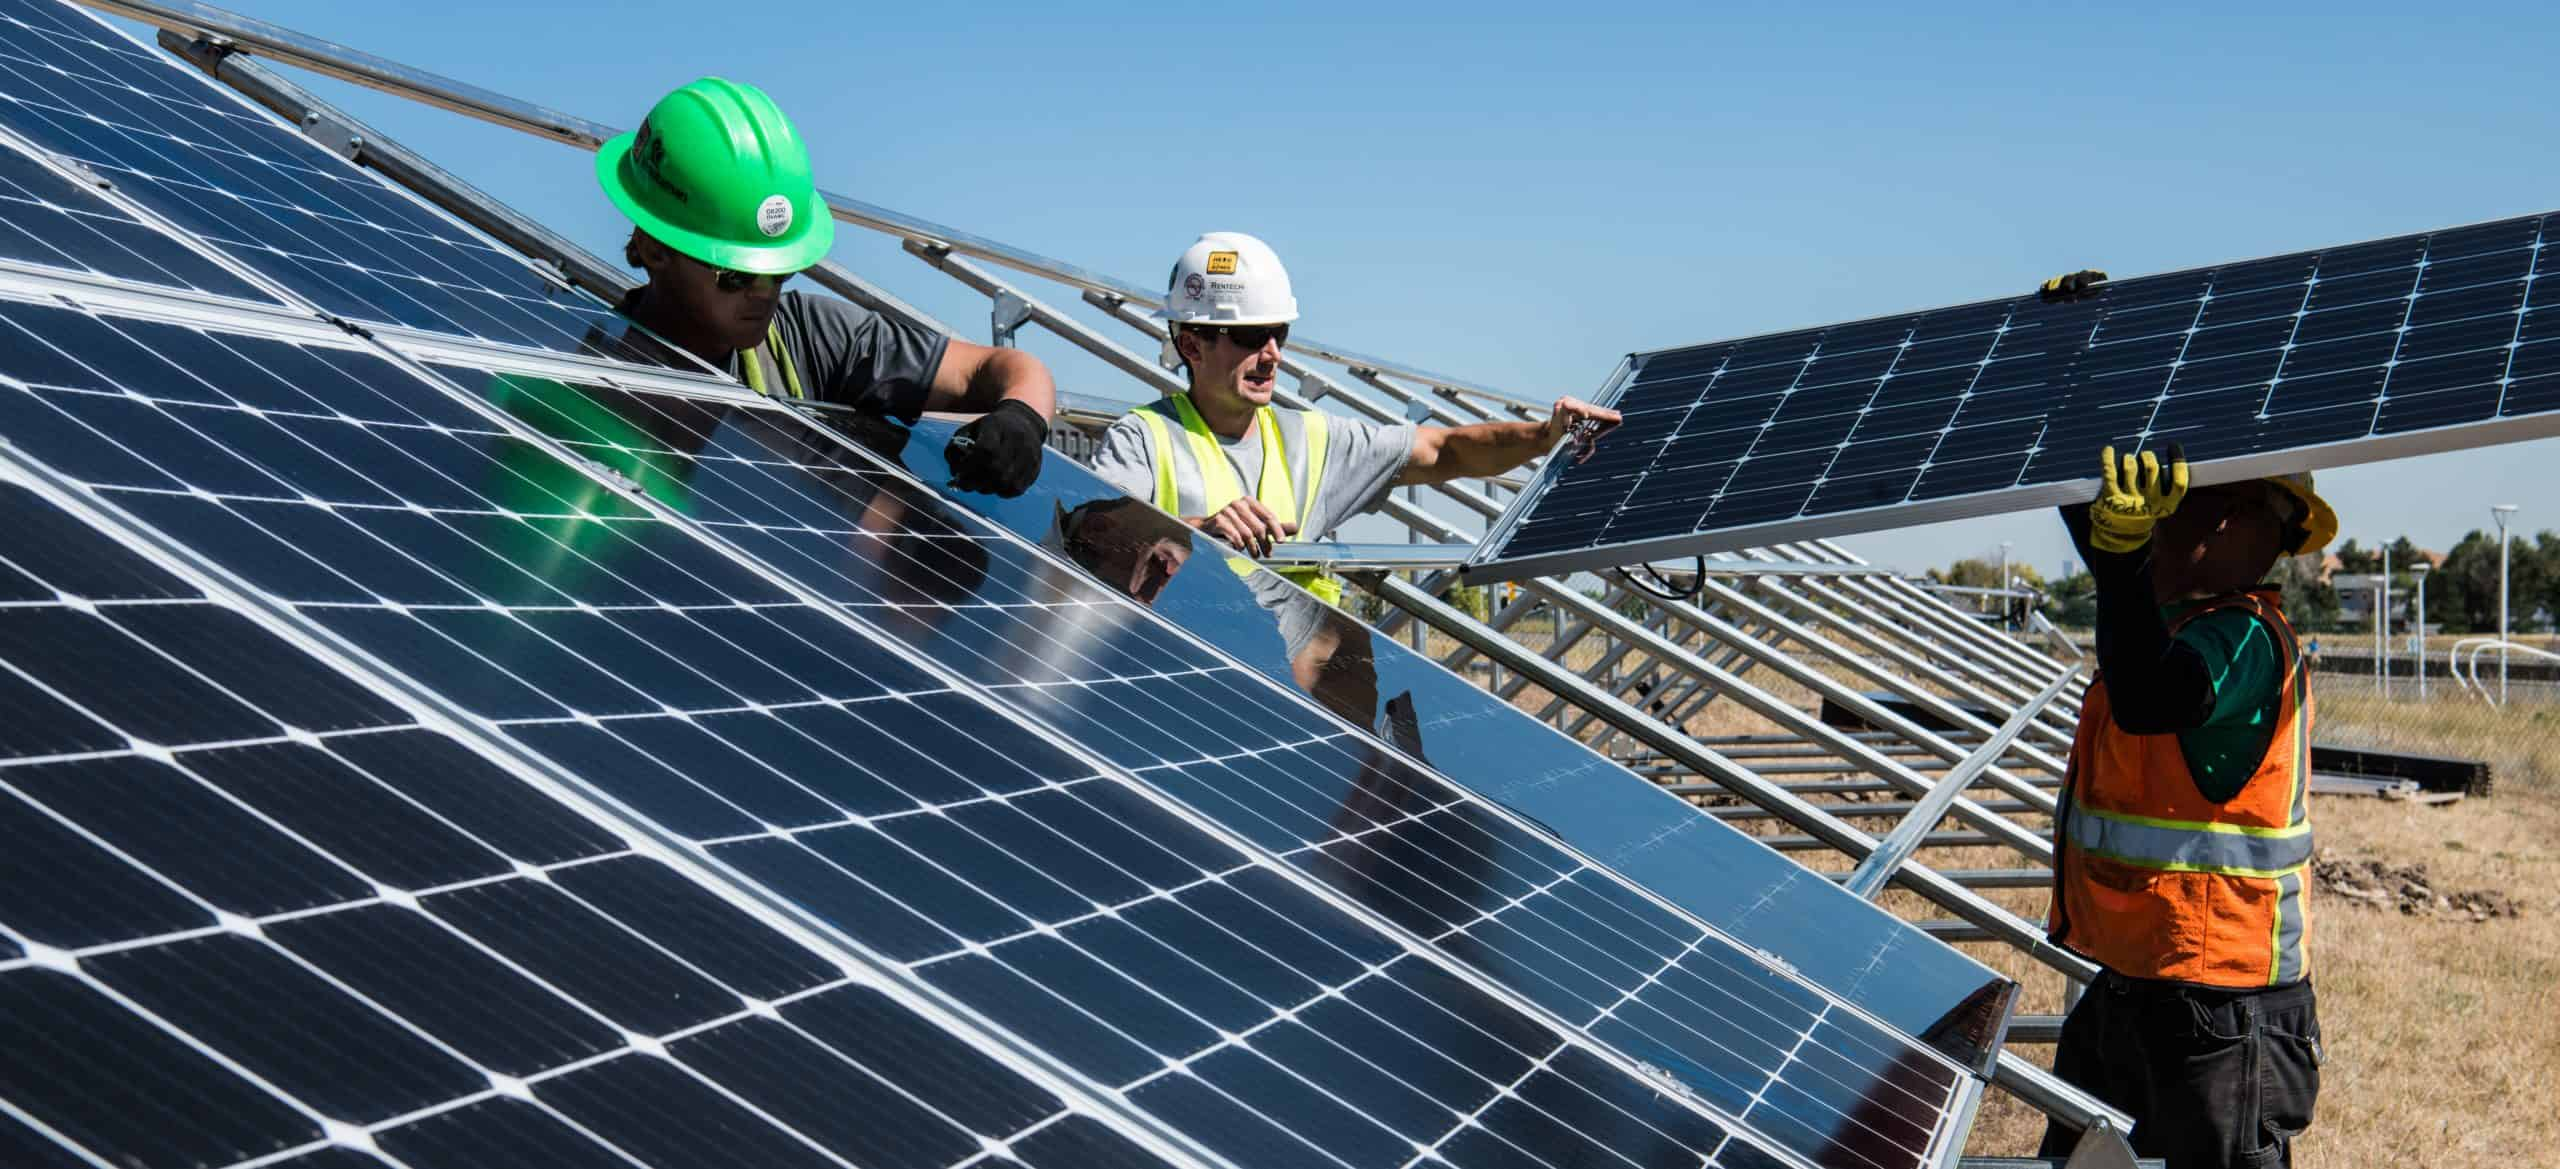 Green Energy Solutions: 10 Things I Wish I'd Known Earlier